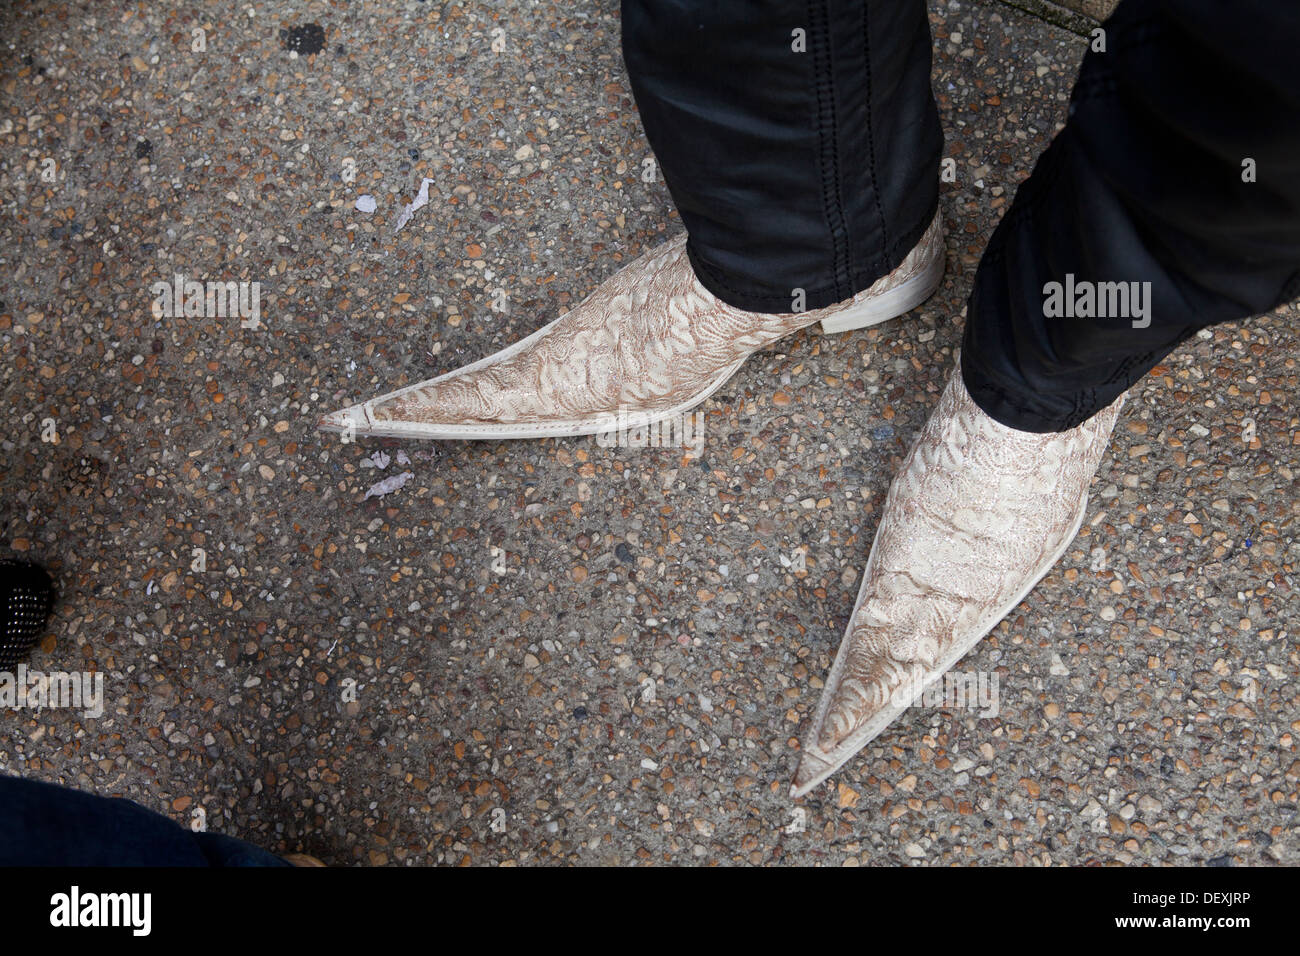 Closeup of man wearing pointy shoes - Stock Image